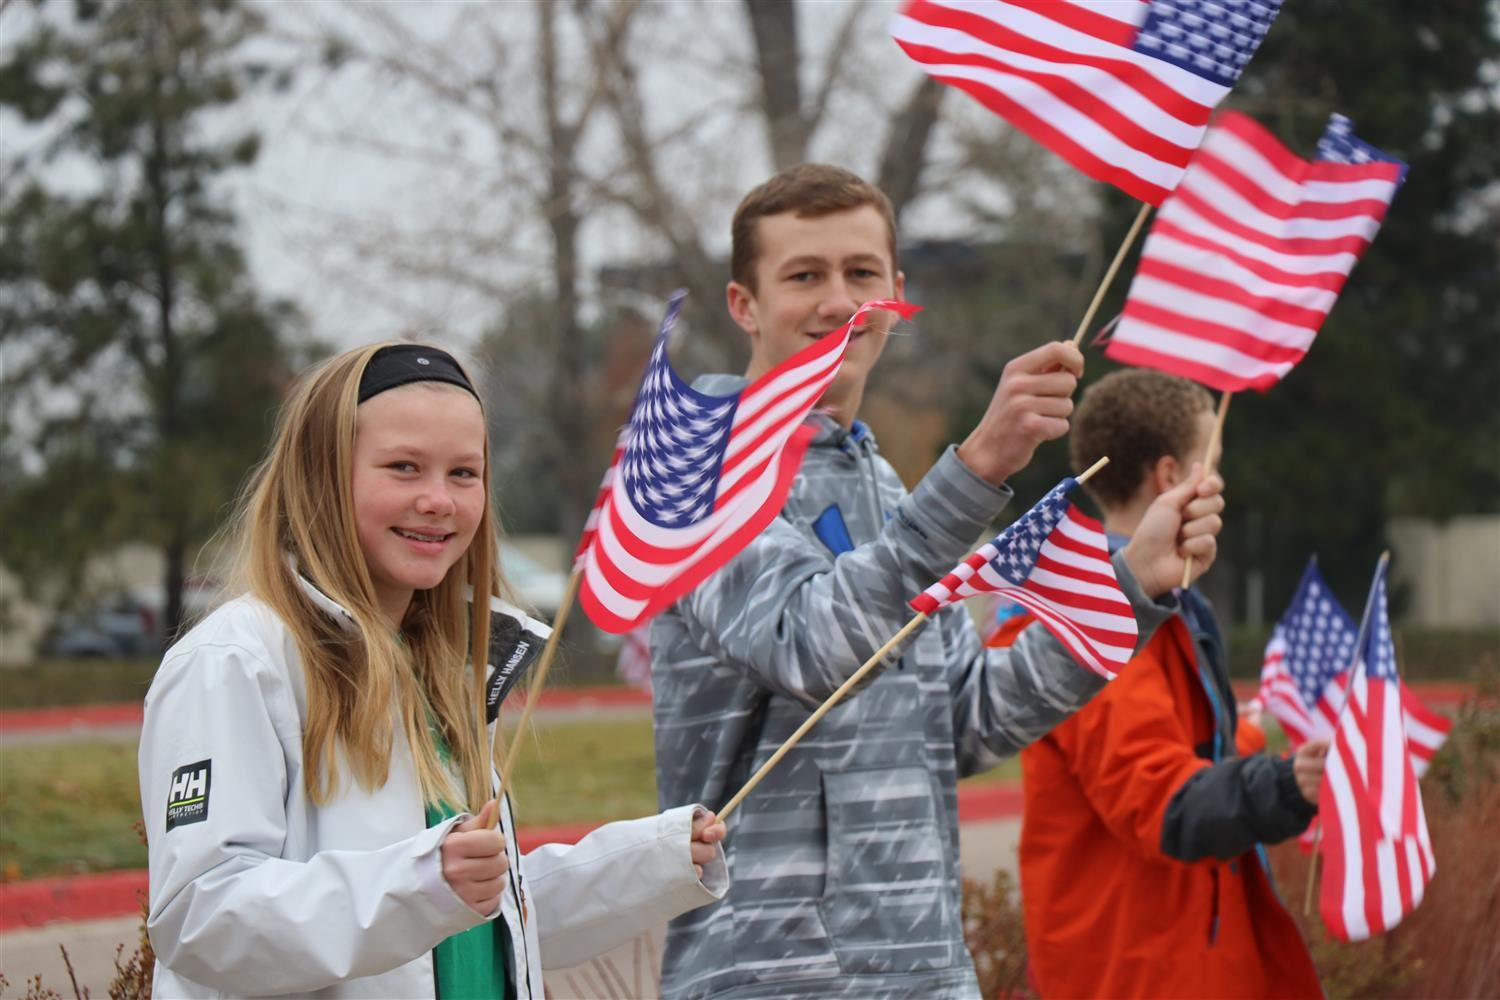 Students waving the flag outside